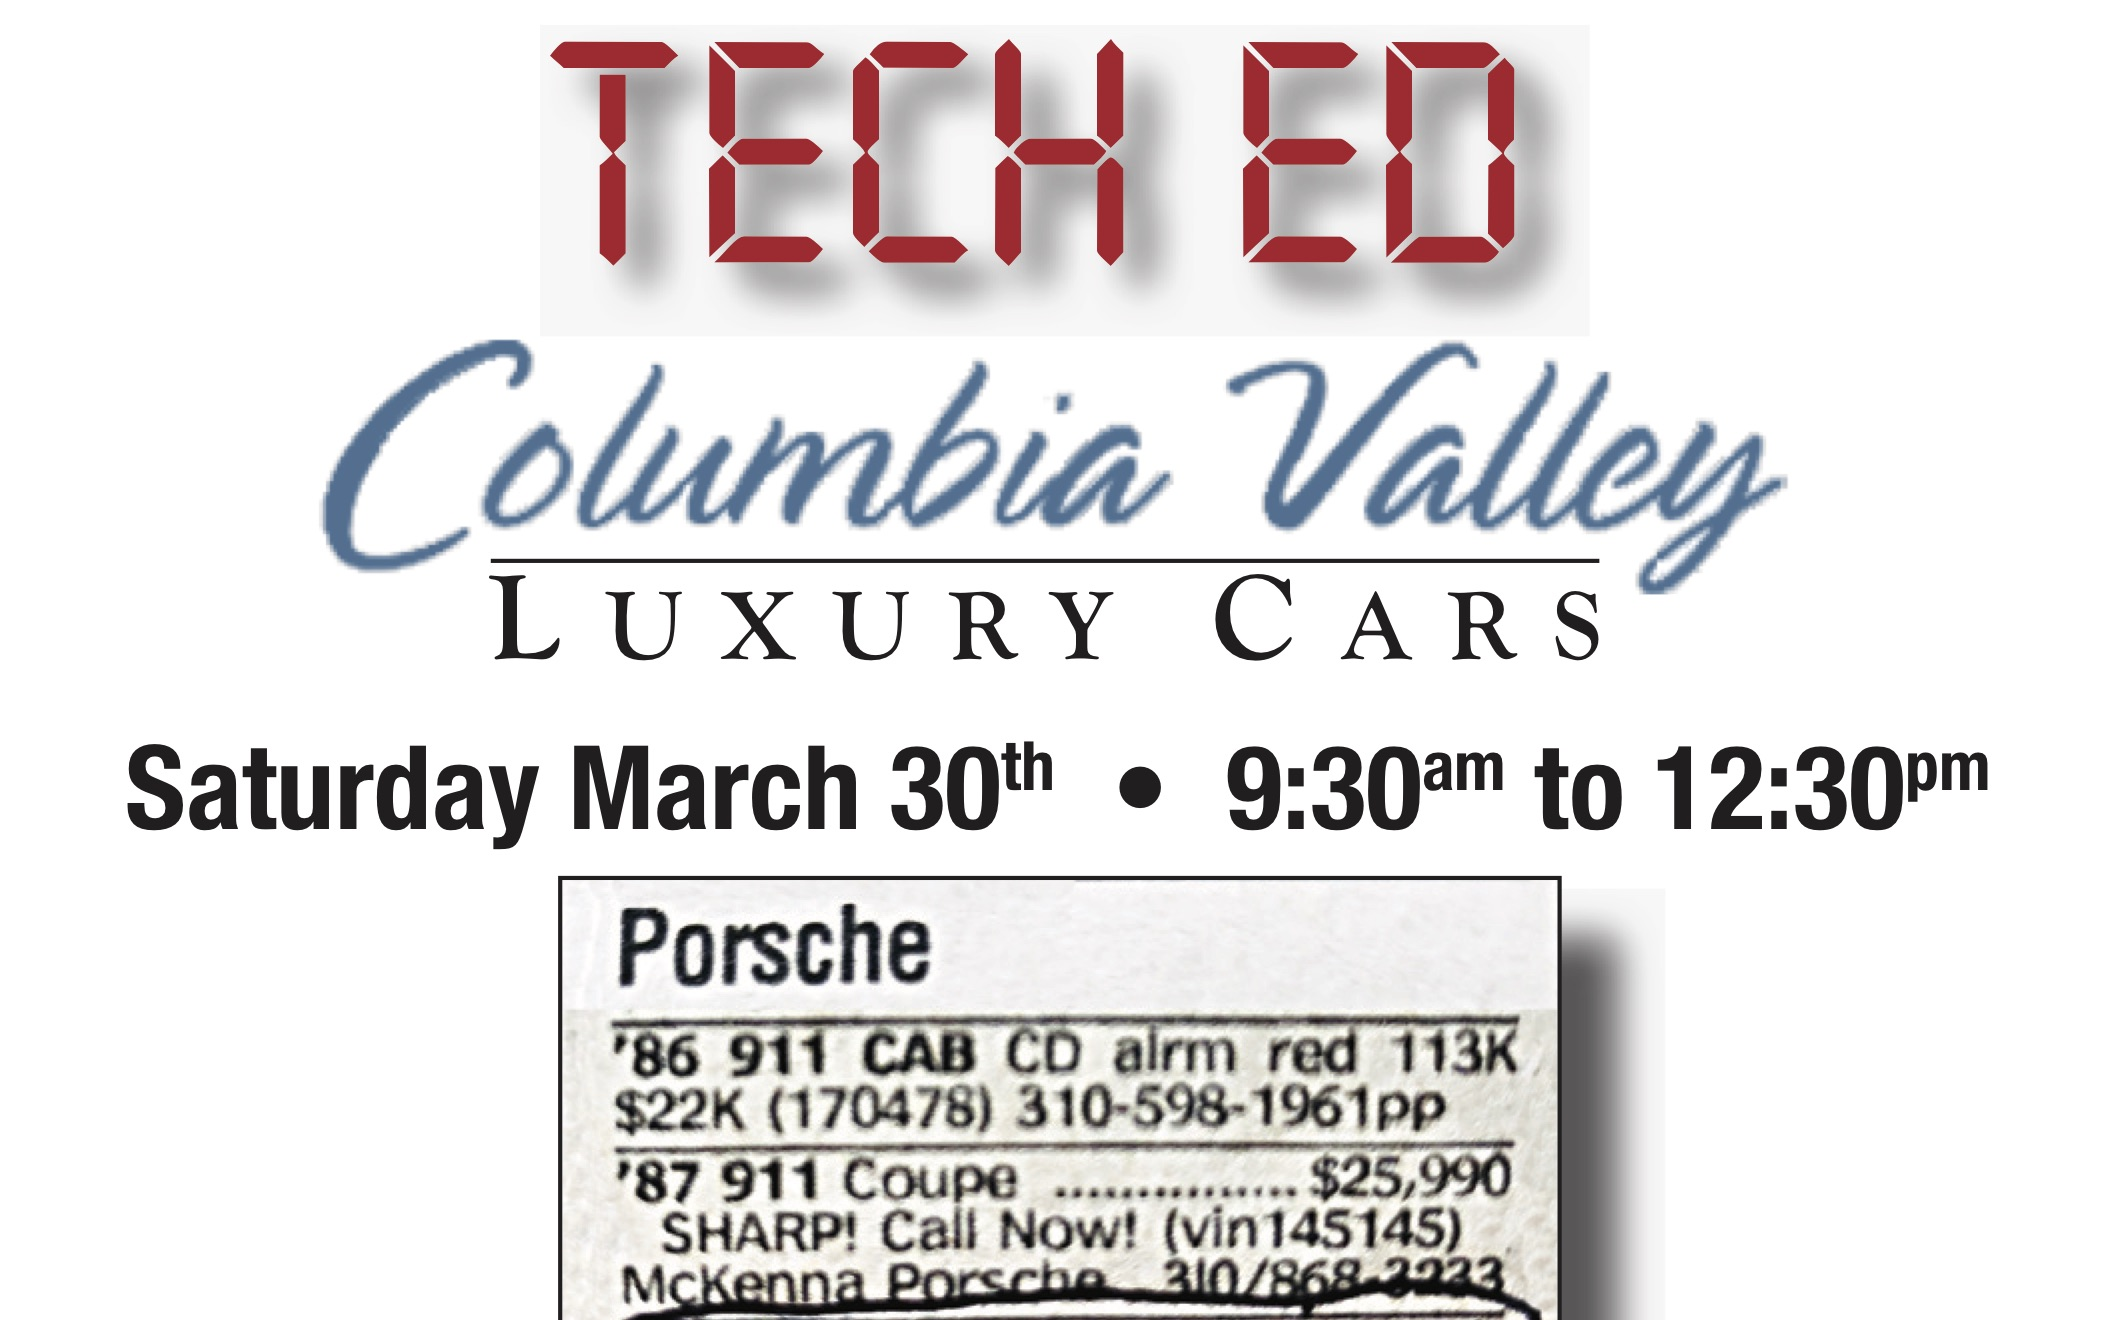 Pnwr Tech Ed Columbia Valley Luxury Cars Porsche Club Of America